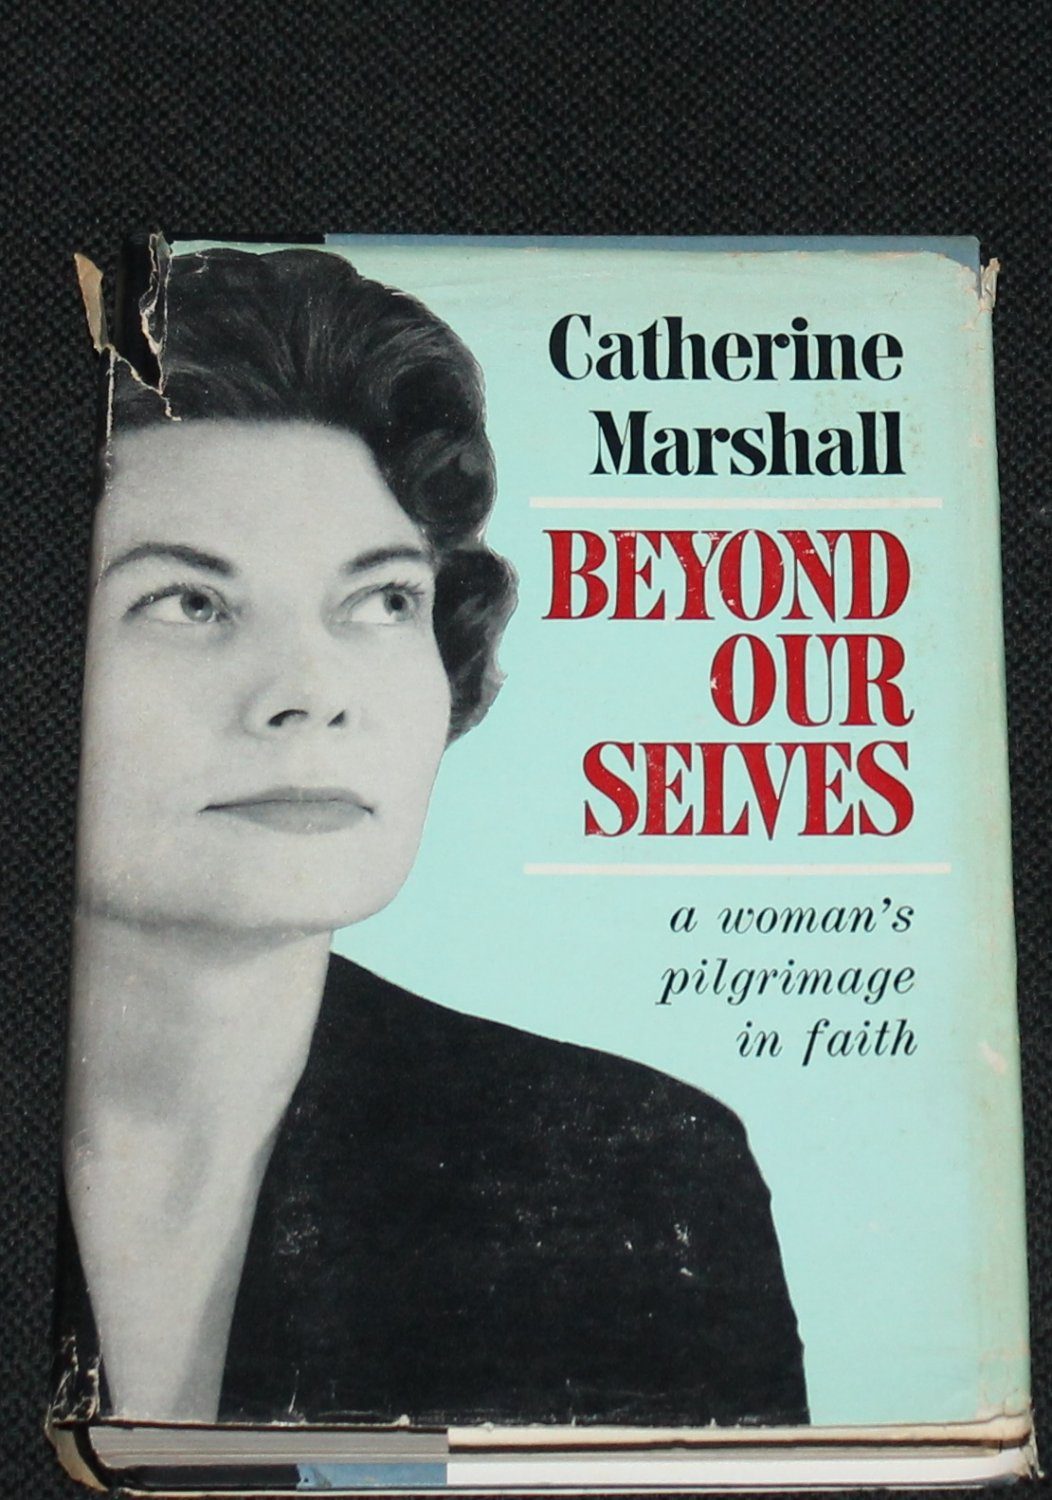 1961 Beyond Our Selves by Catherine Marshall - a woman's pilgrimage in faith - Christian book